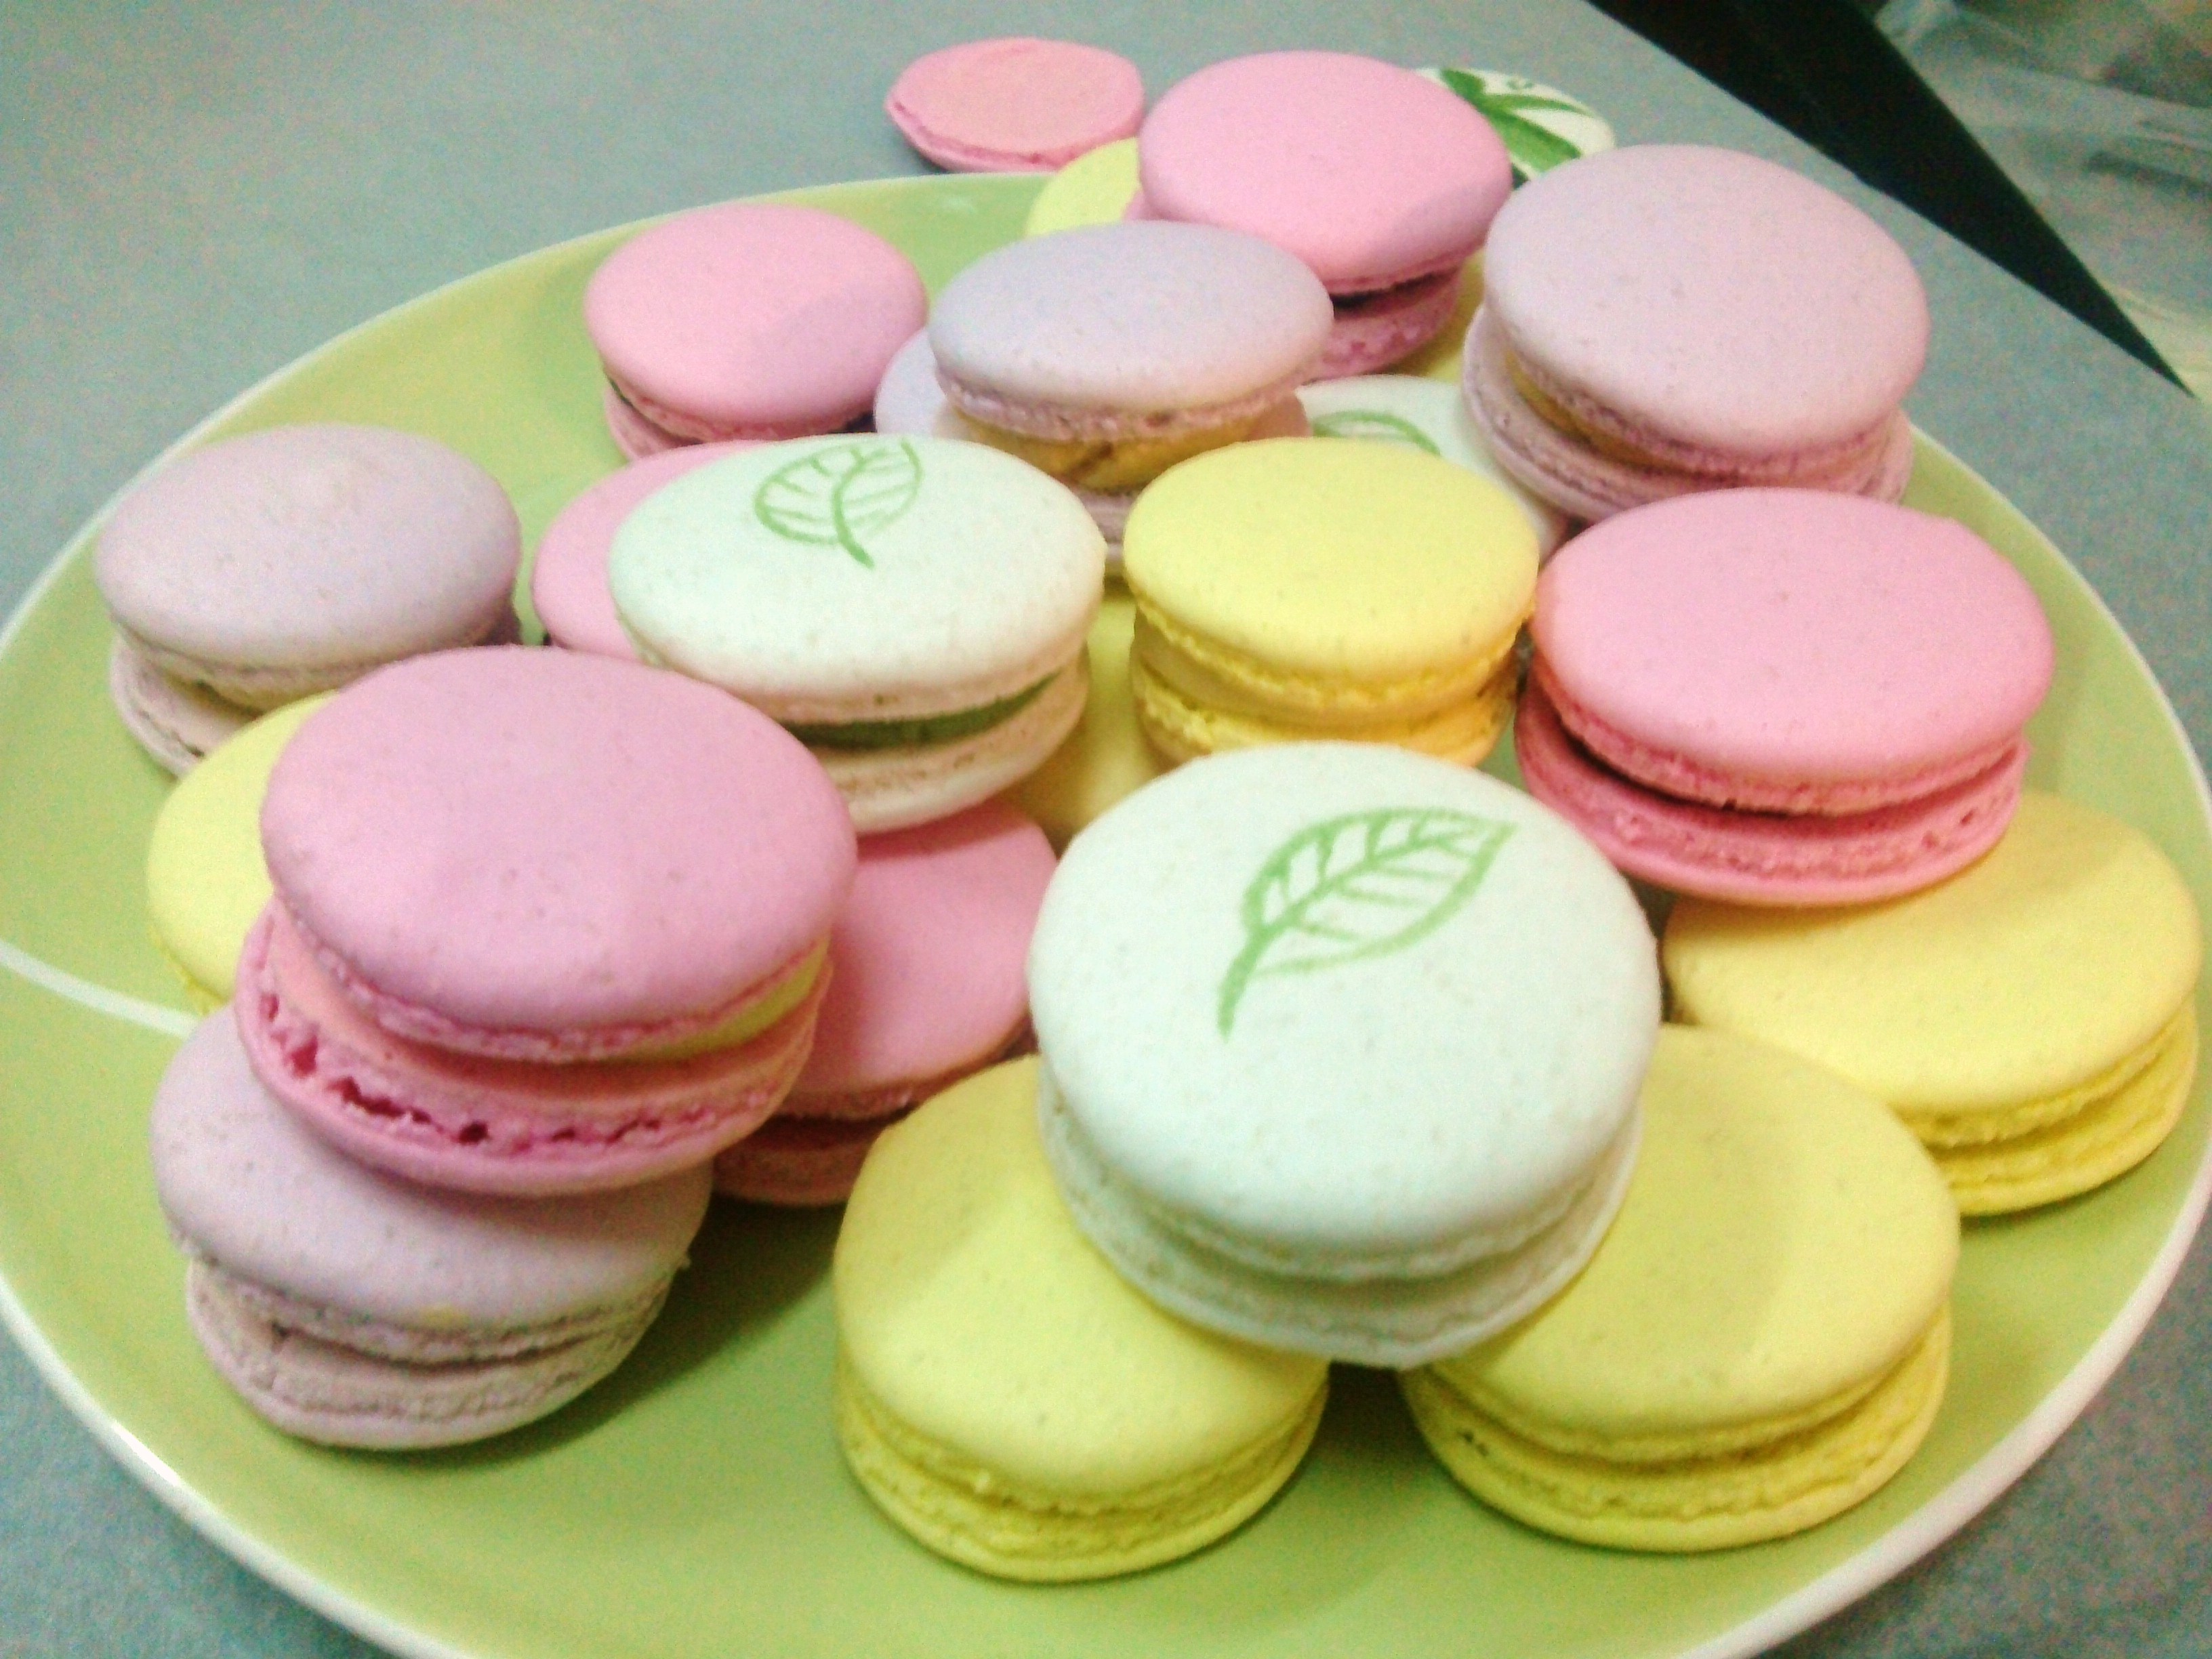 french macaron recipe research These cookies are a labor of love and we did a lot of research to perfect this  recipe for you, after our own failures please follow as written and you will have a .